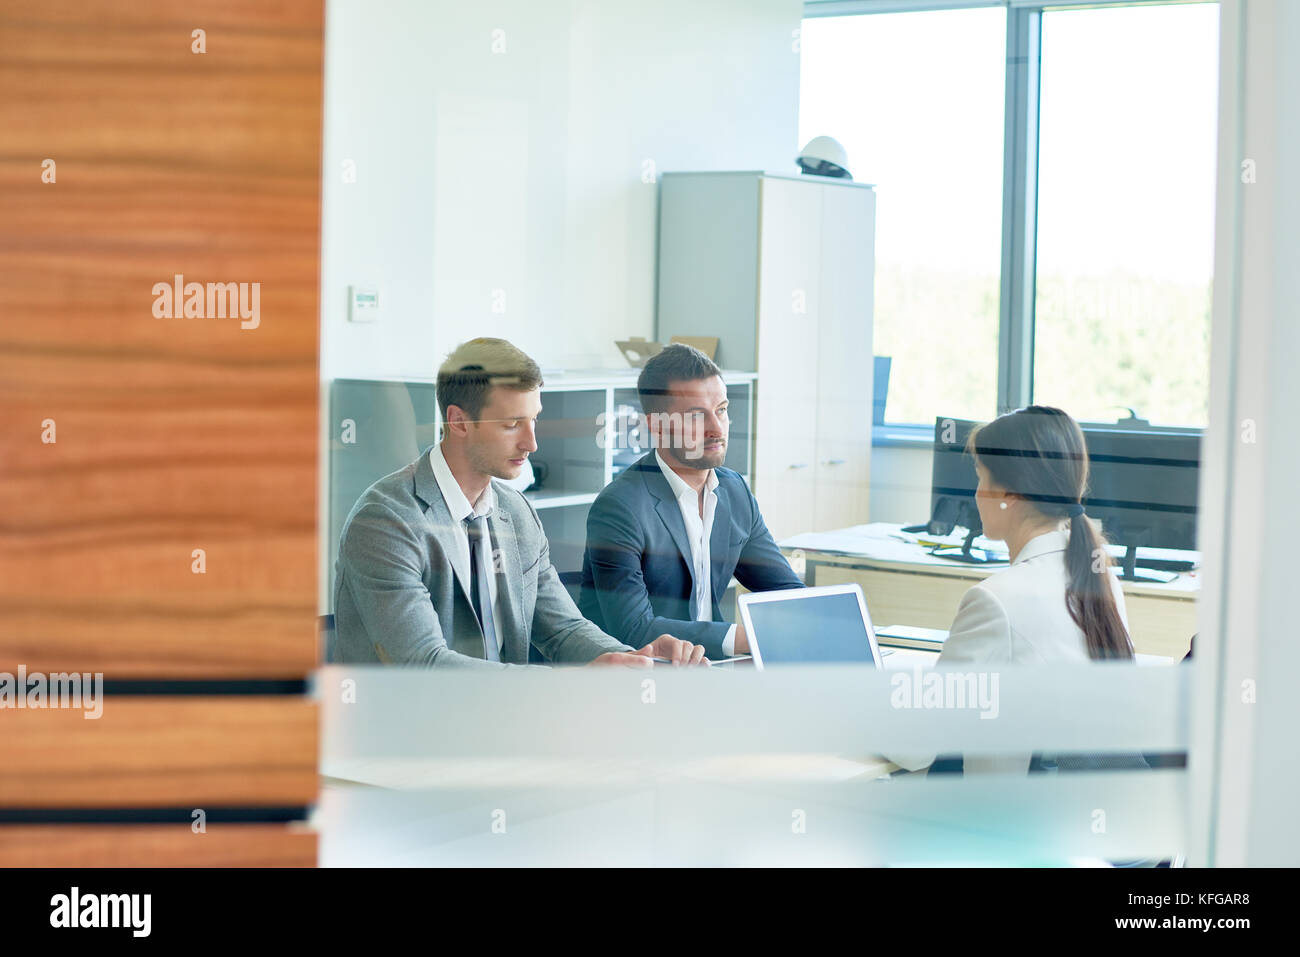 Business Meeting, Copy Space - Stock Image